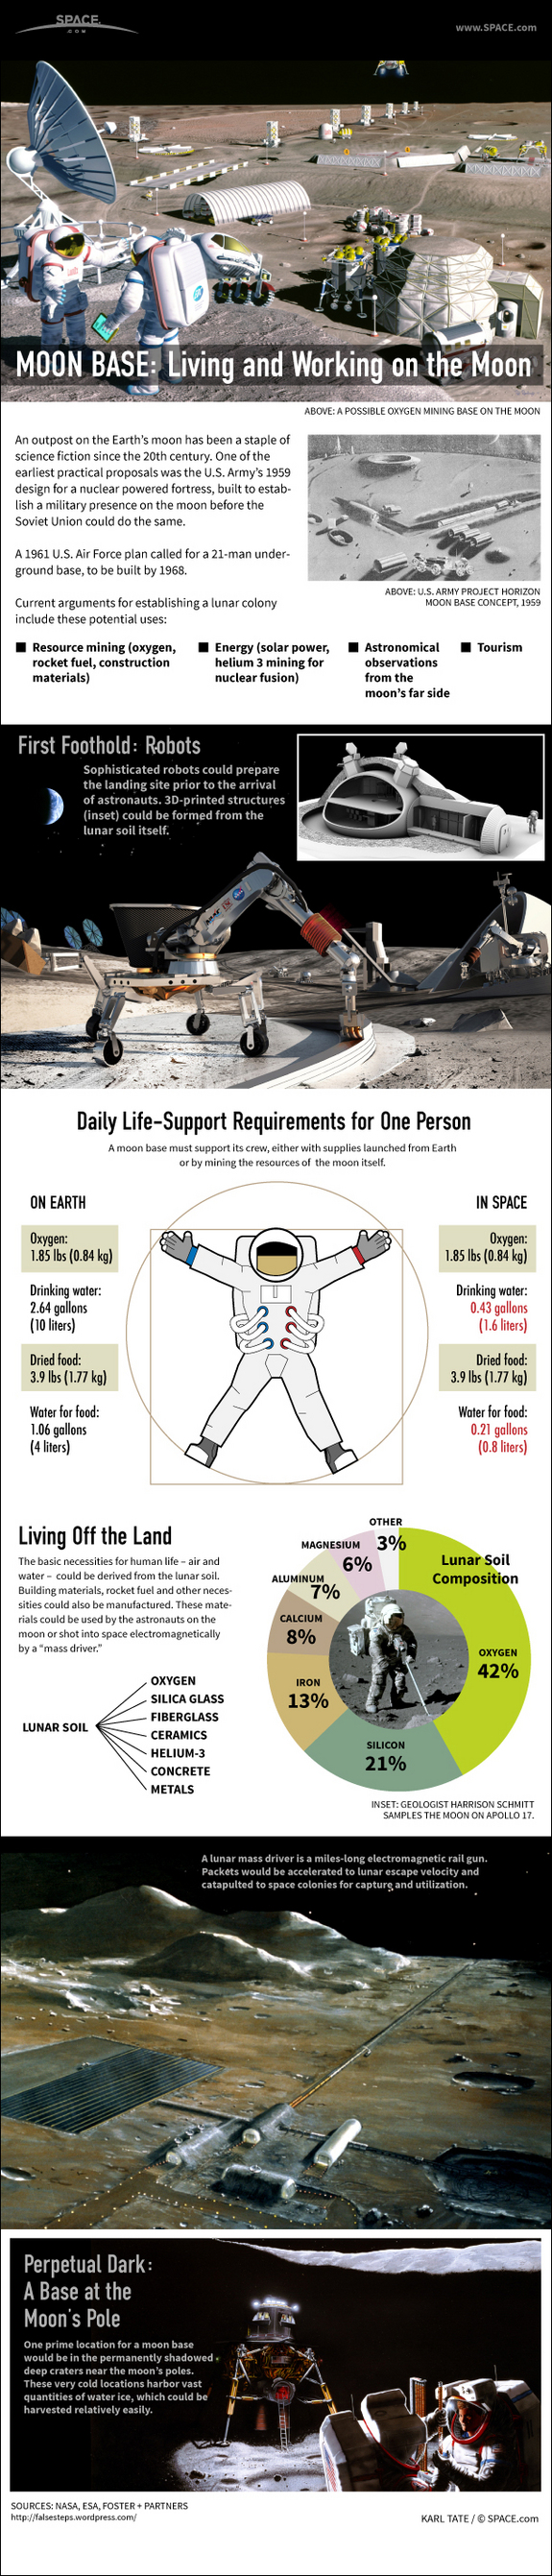 Find out how future moon bases could work in this SPACE.com infographic.